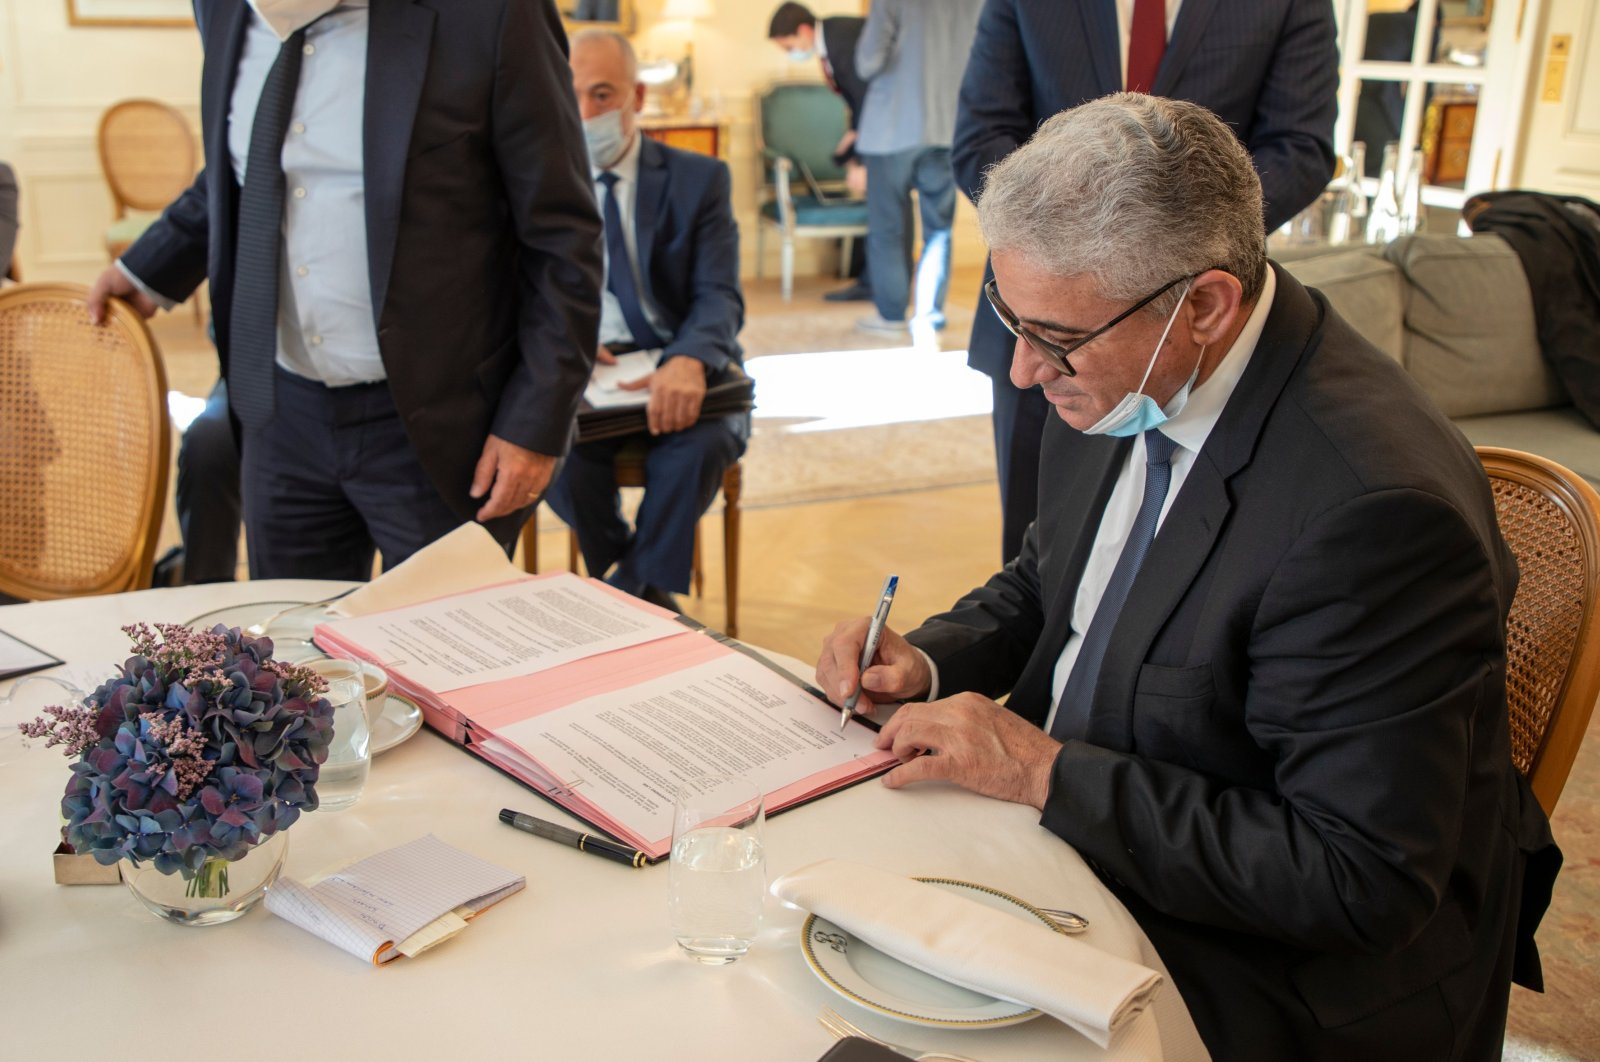 Libya's Interior Minister Fathi Bashagha signs the agreement with Idemia in Paris, France, Nov. 18, 2020. (Photo by Libya's Interior Ministry via AA)